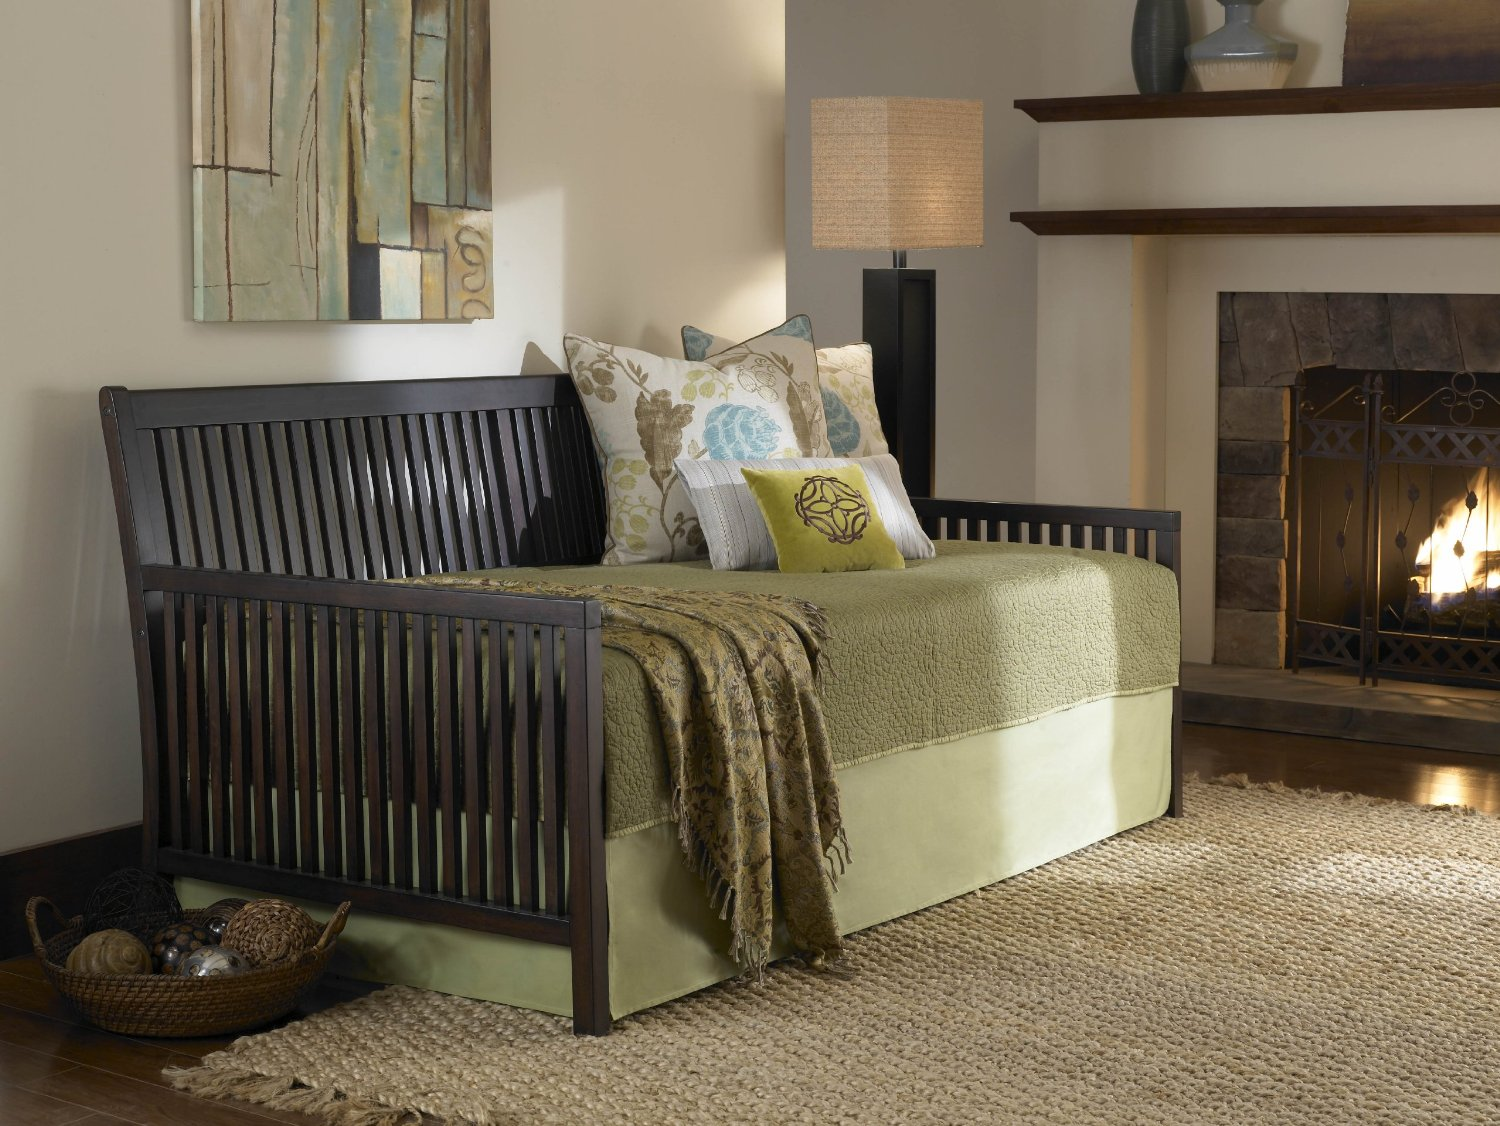 Fashion Bed Group Mission Complete Wood Daybed with Link Spring Support Frame and Pop-Up Trundle Bed, Espresso Finish, Twin